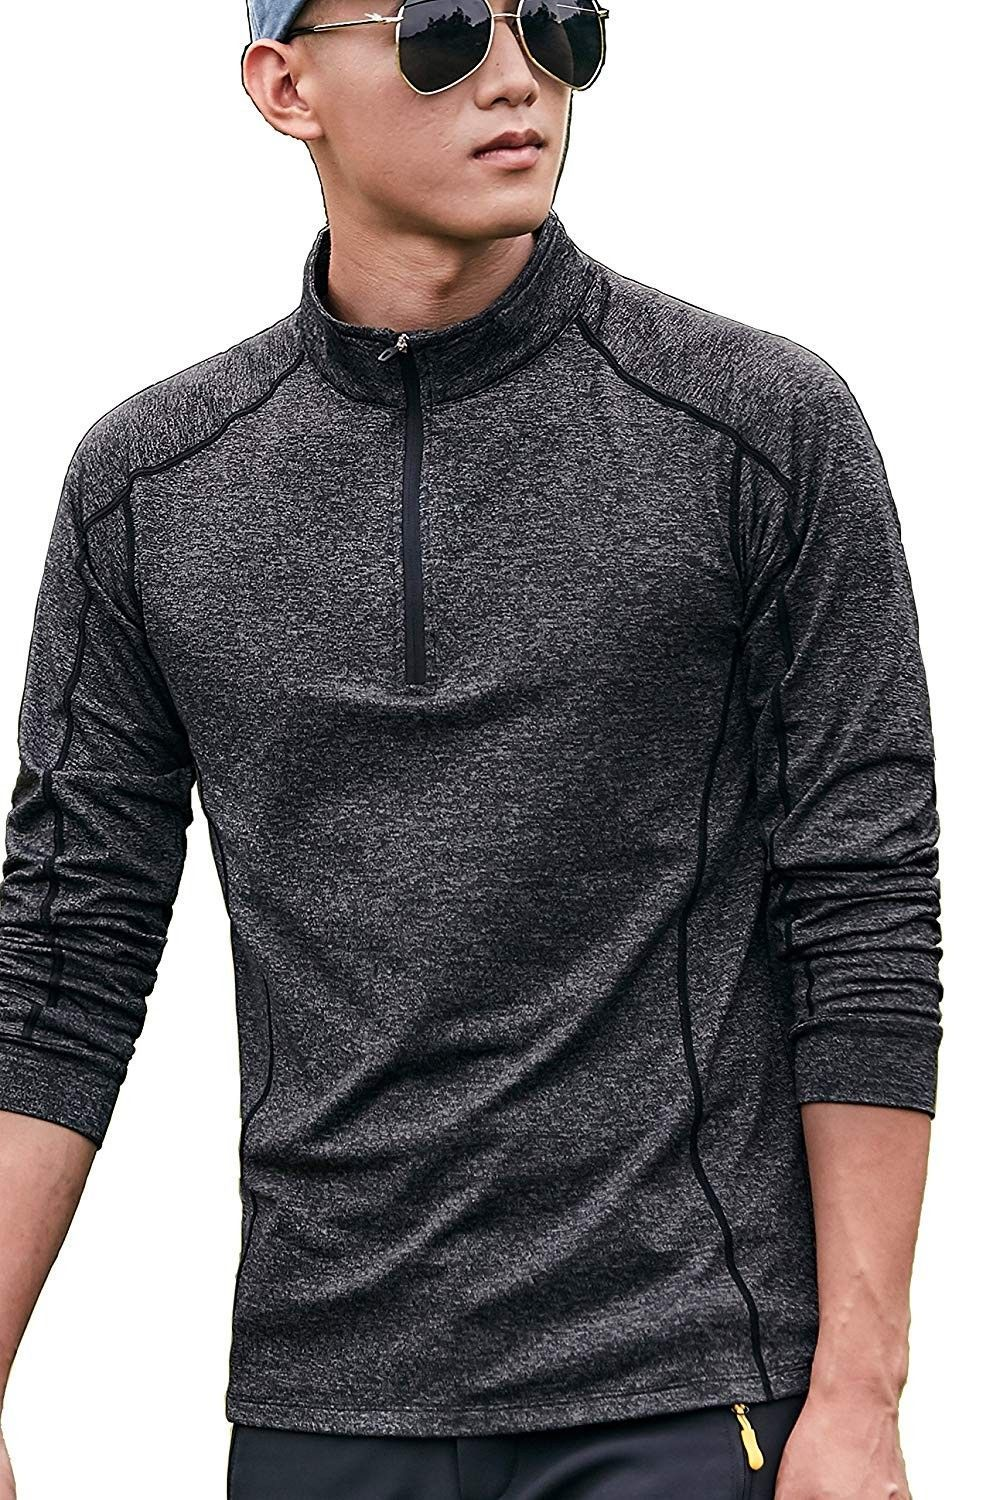 Yoga Shirt For Men Long Sleeve Yoga Clothes Black Flannel Quick Dry outwork Running t Shirt - Black...